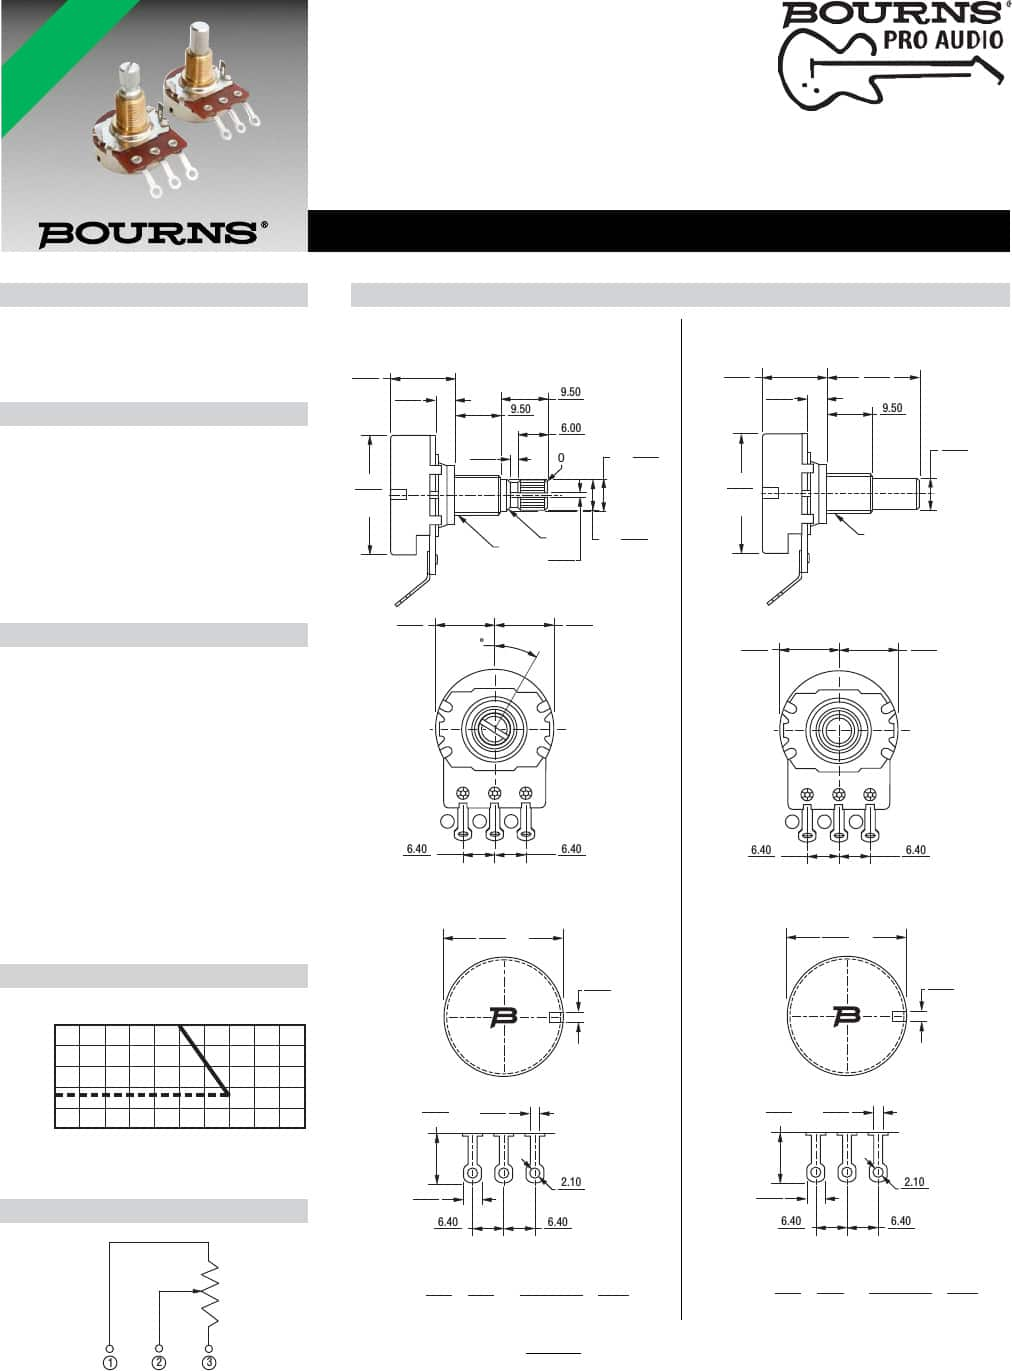 jvc kd r200 wiring diagram 2 smeg cooker harness toyskids co bourns library car audio stereo